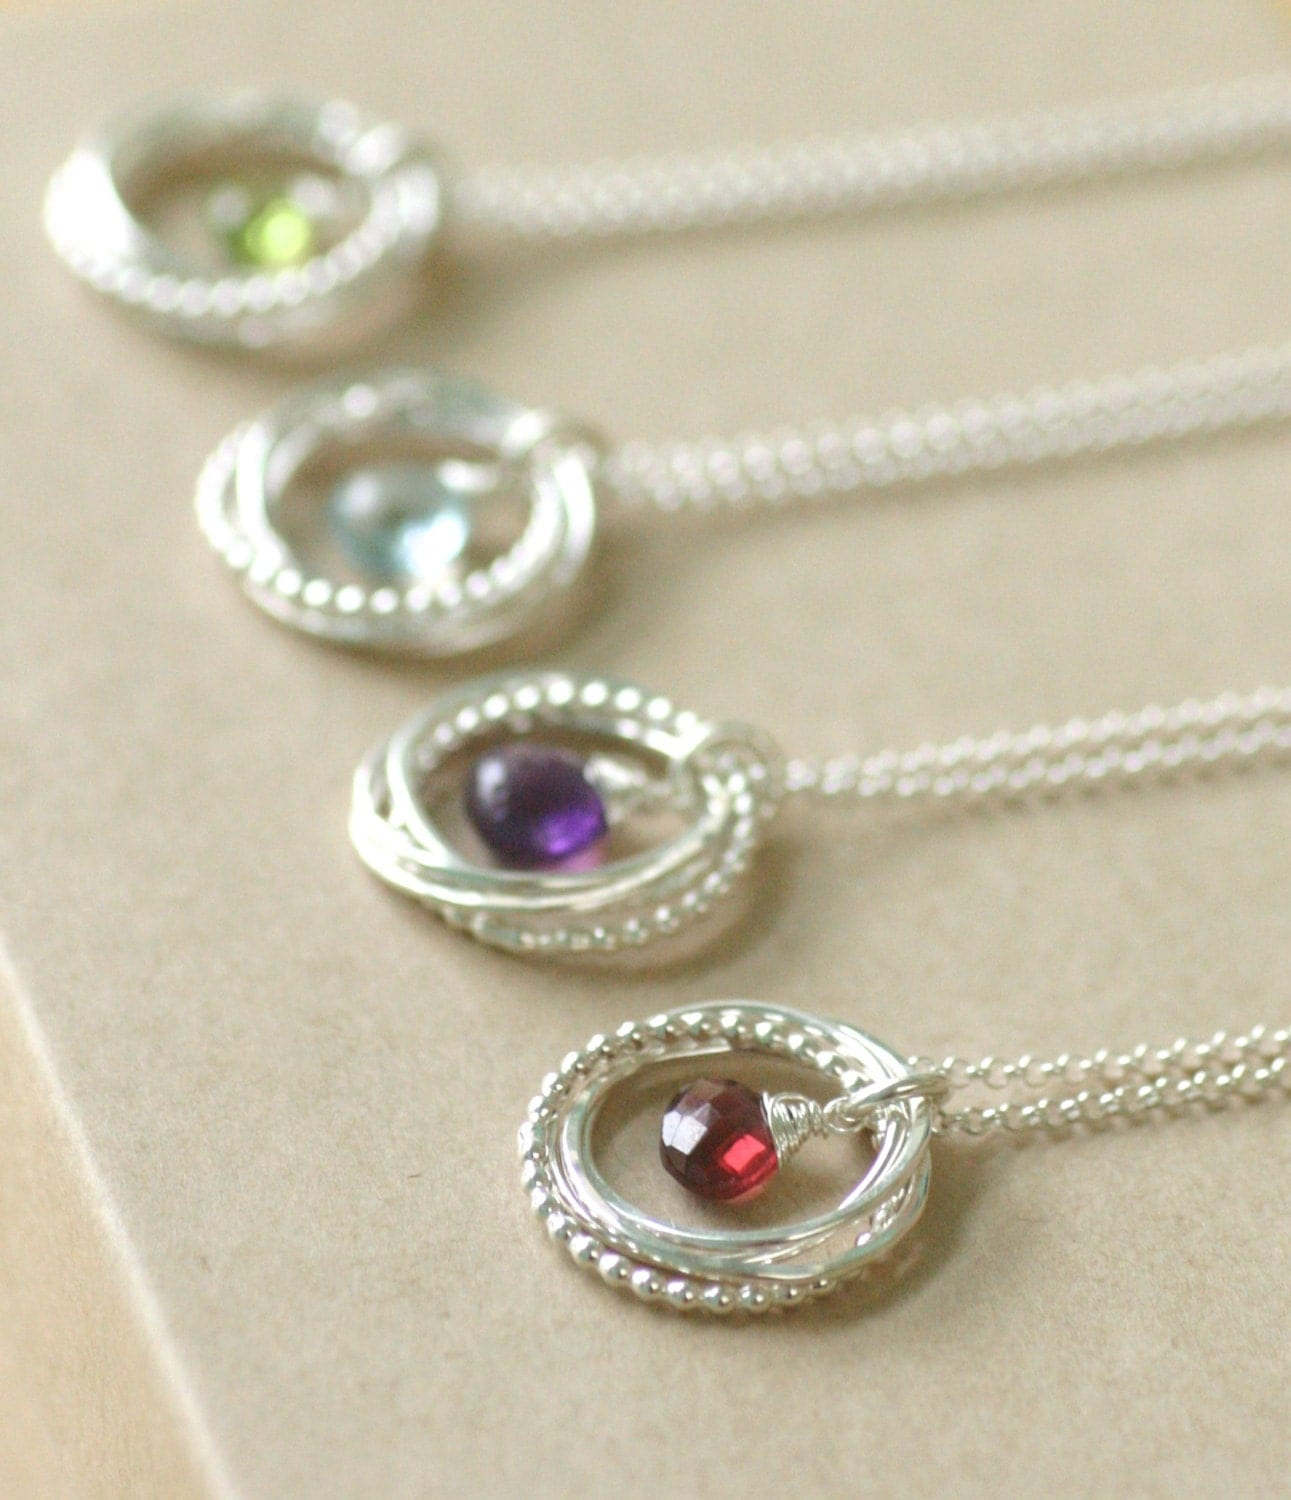 4 best friend necklaces bridesmaid jewelry set of 4